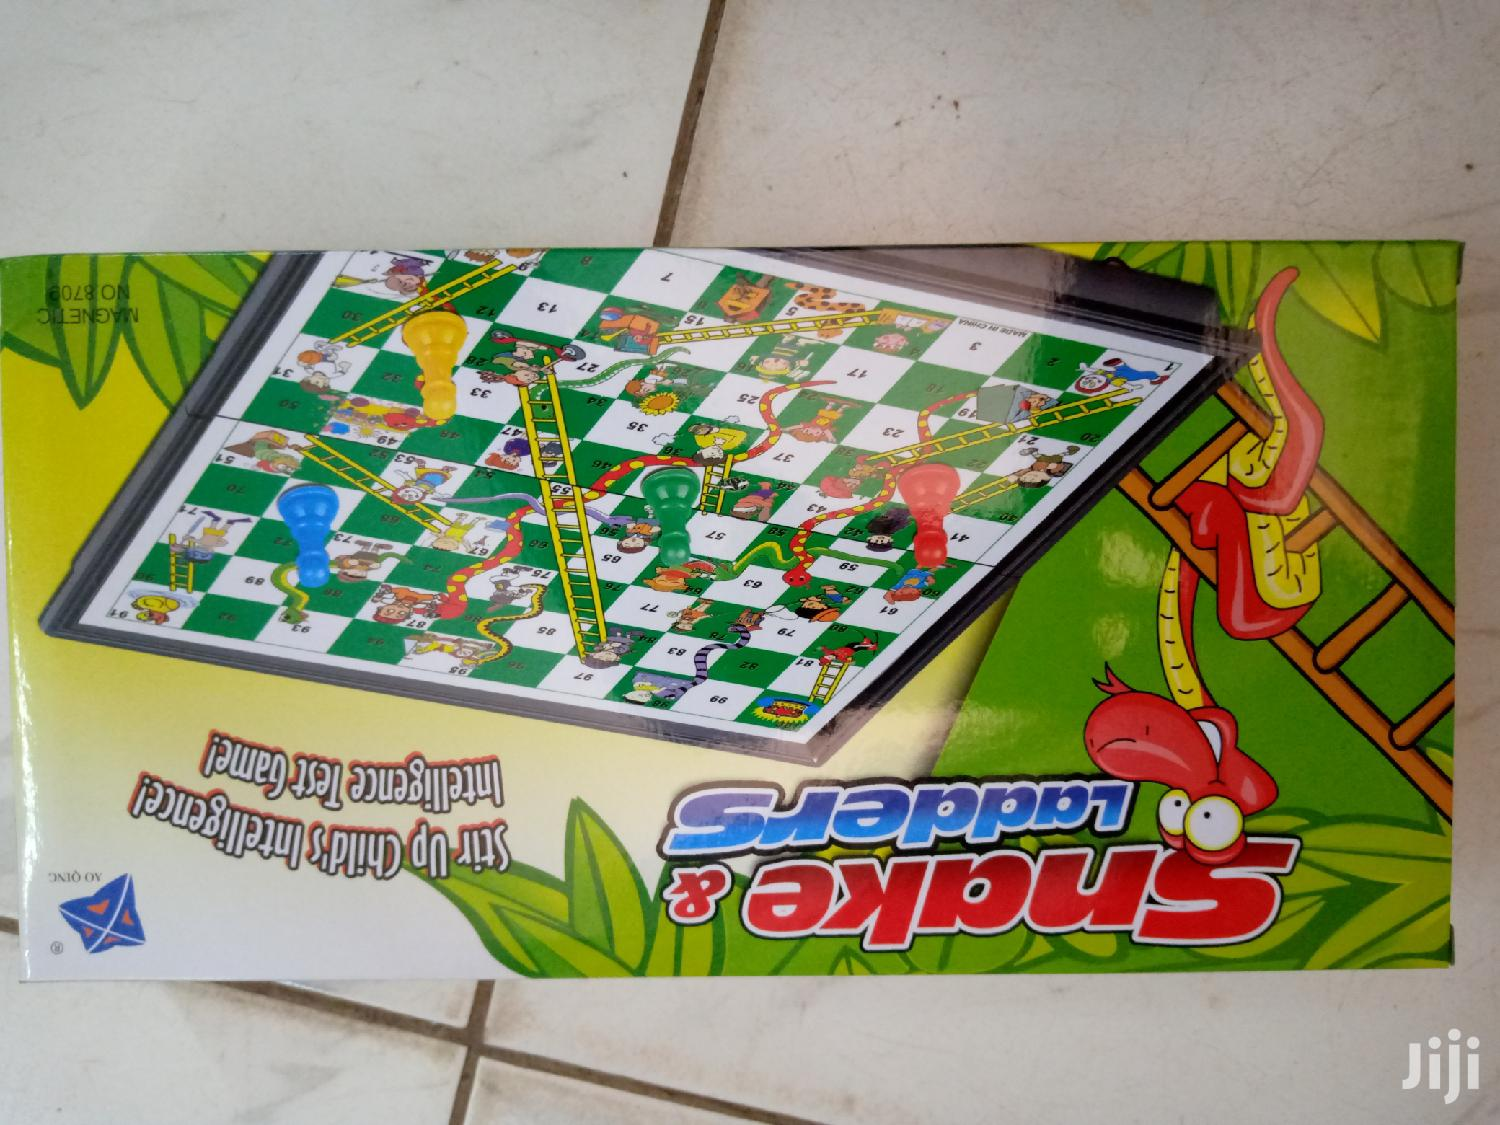 Snakes And Ladders | Books & Games for sale in Kampala, Central Region, Uganda